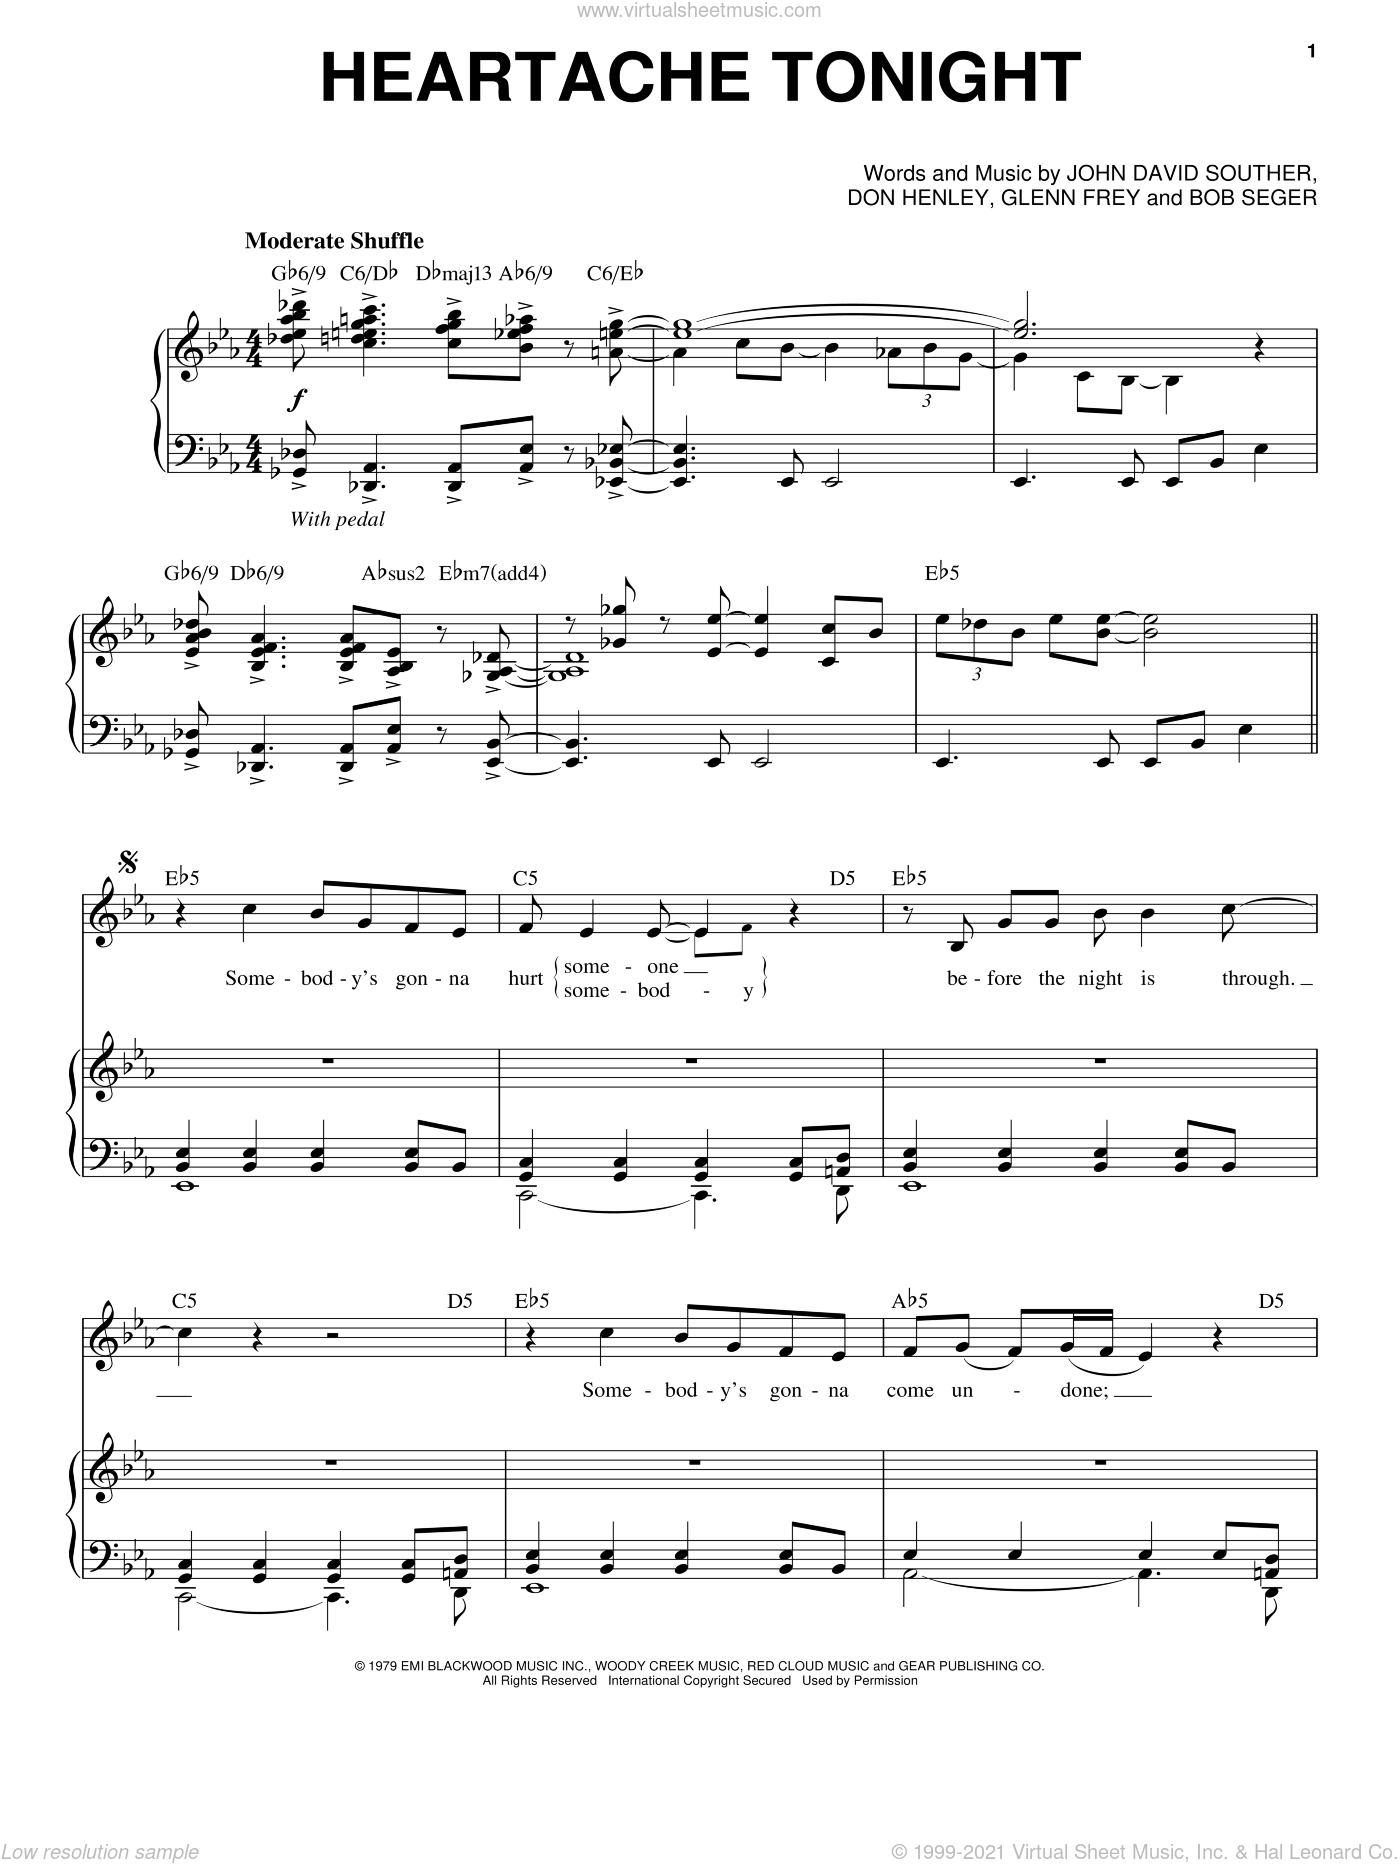 Heartache Tonight sheet music for voice and piano by John David Souther